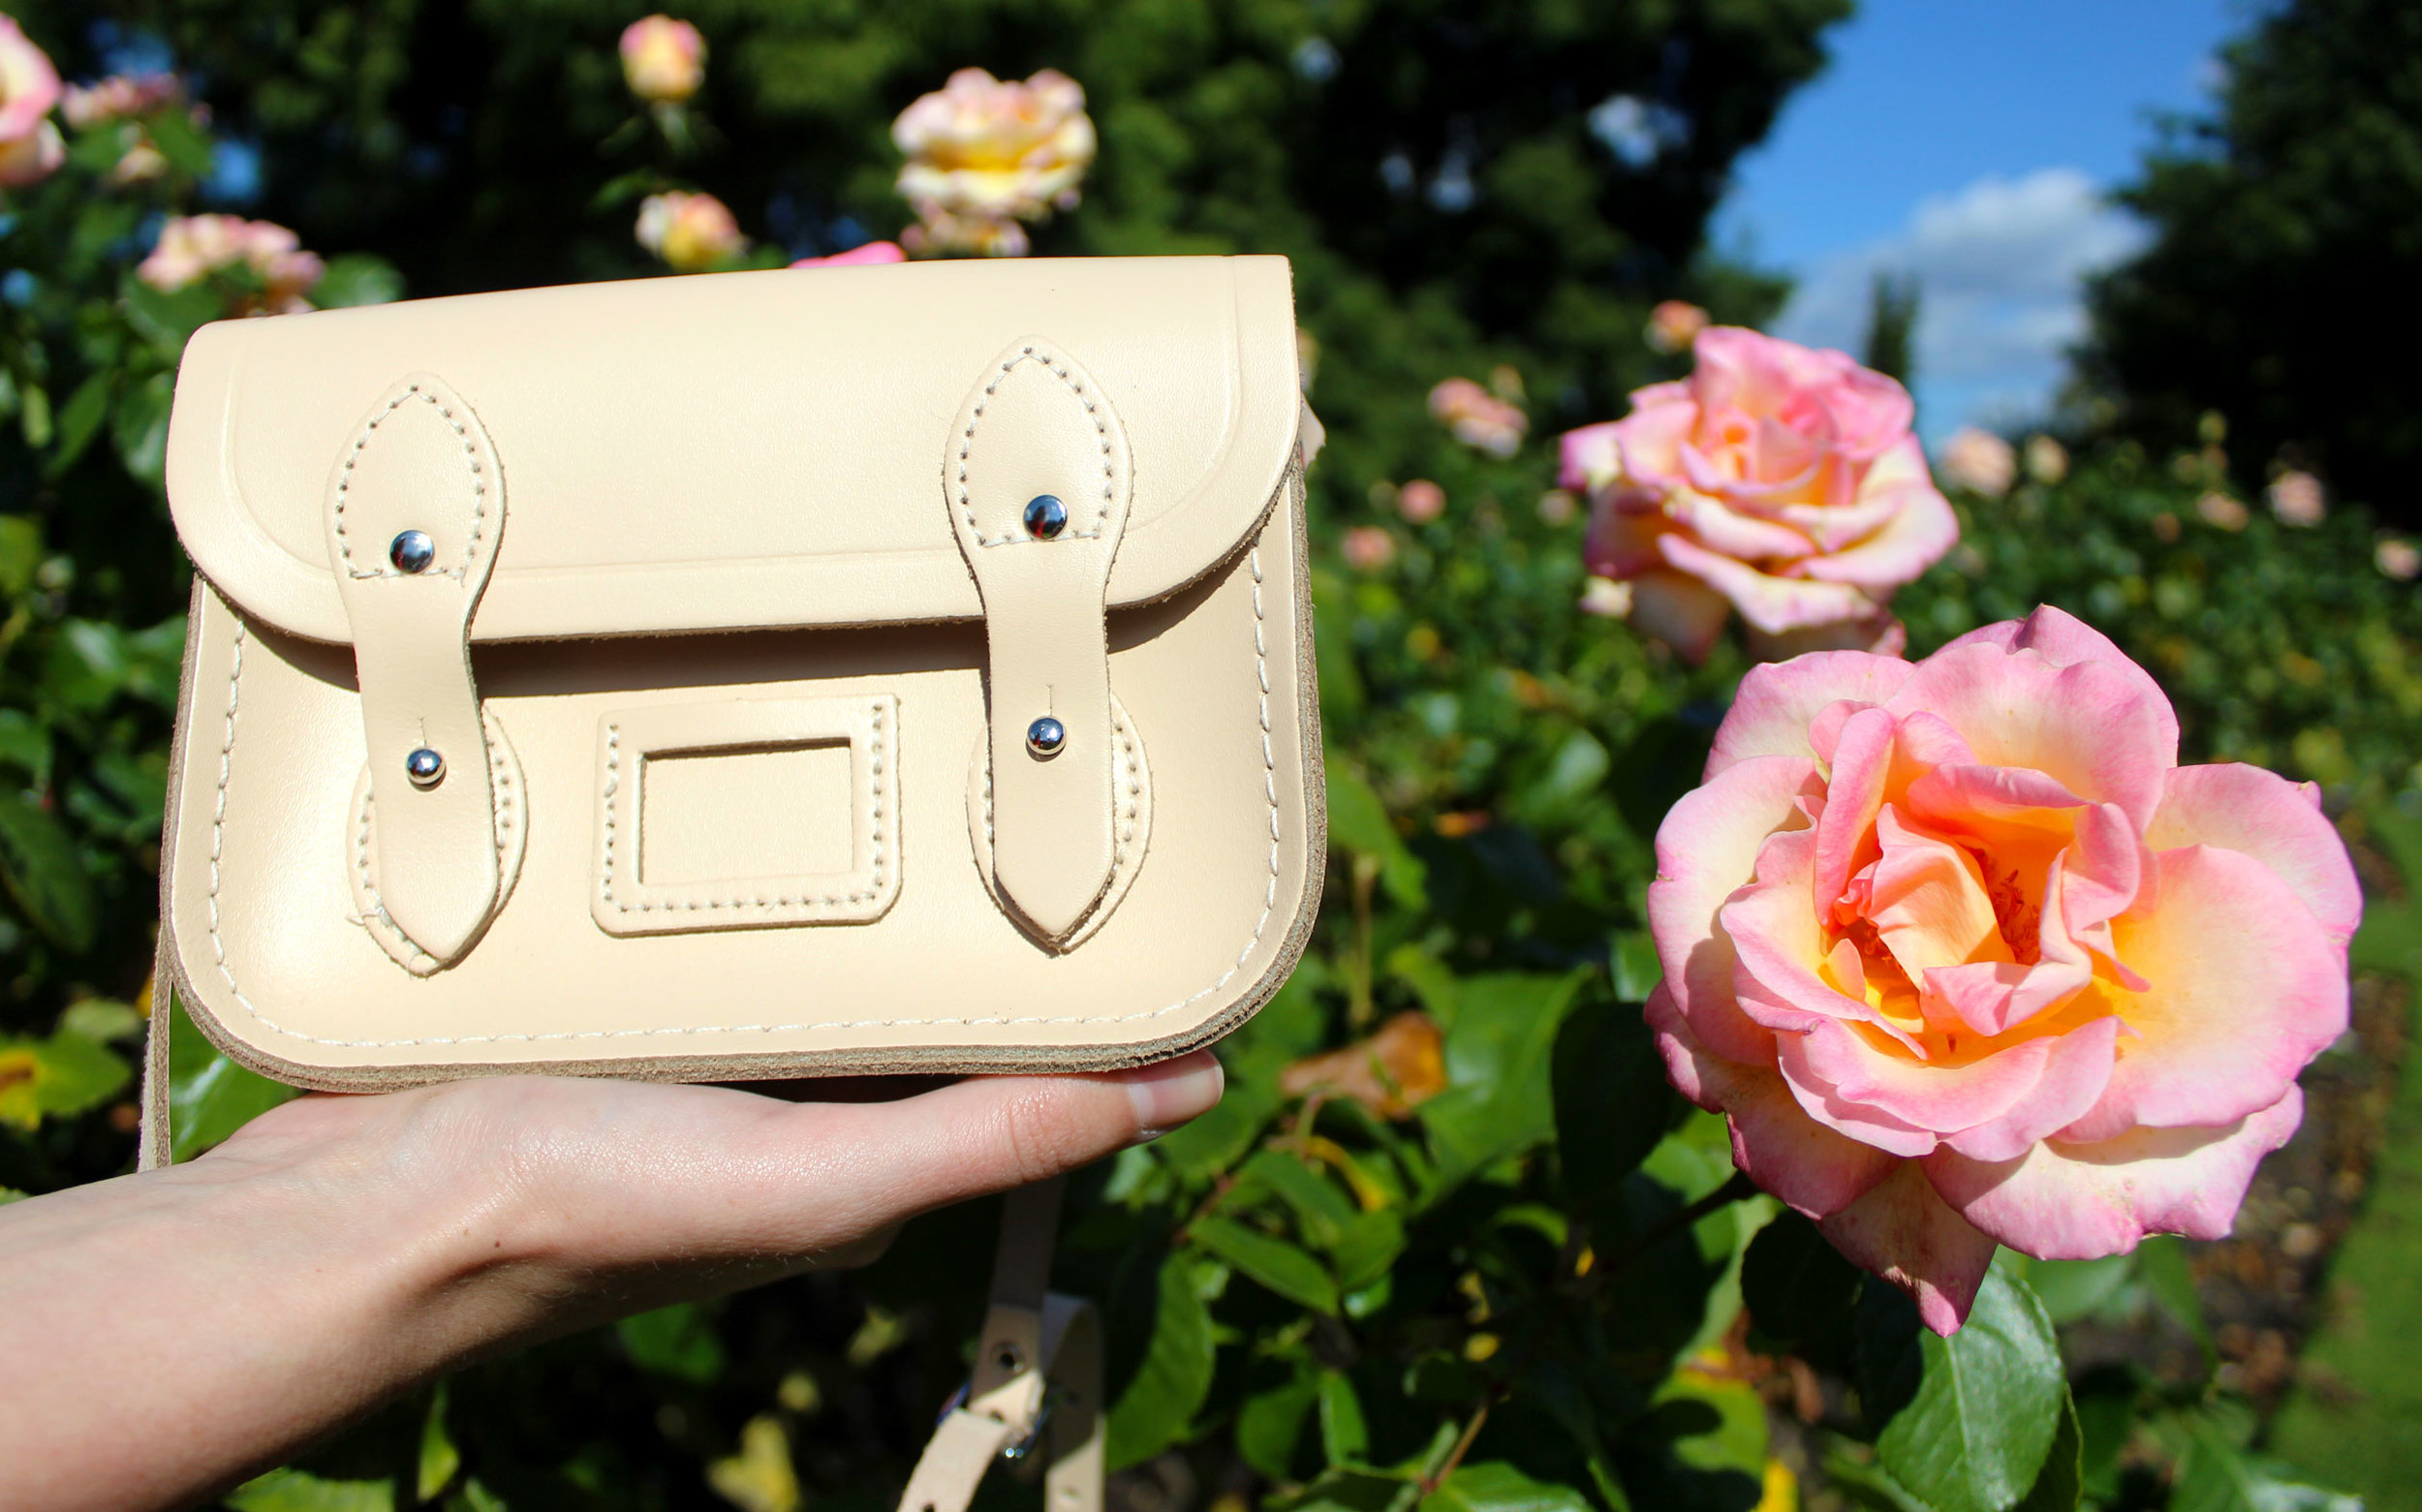 A mini bag from The Cambridge Satchel Company and a pretty pink rose.